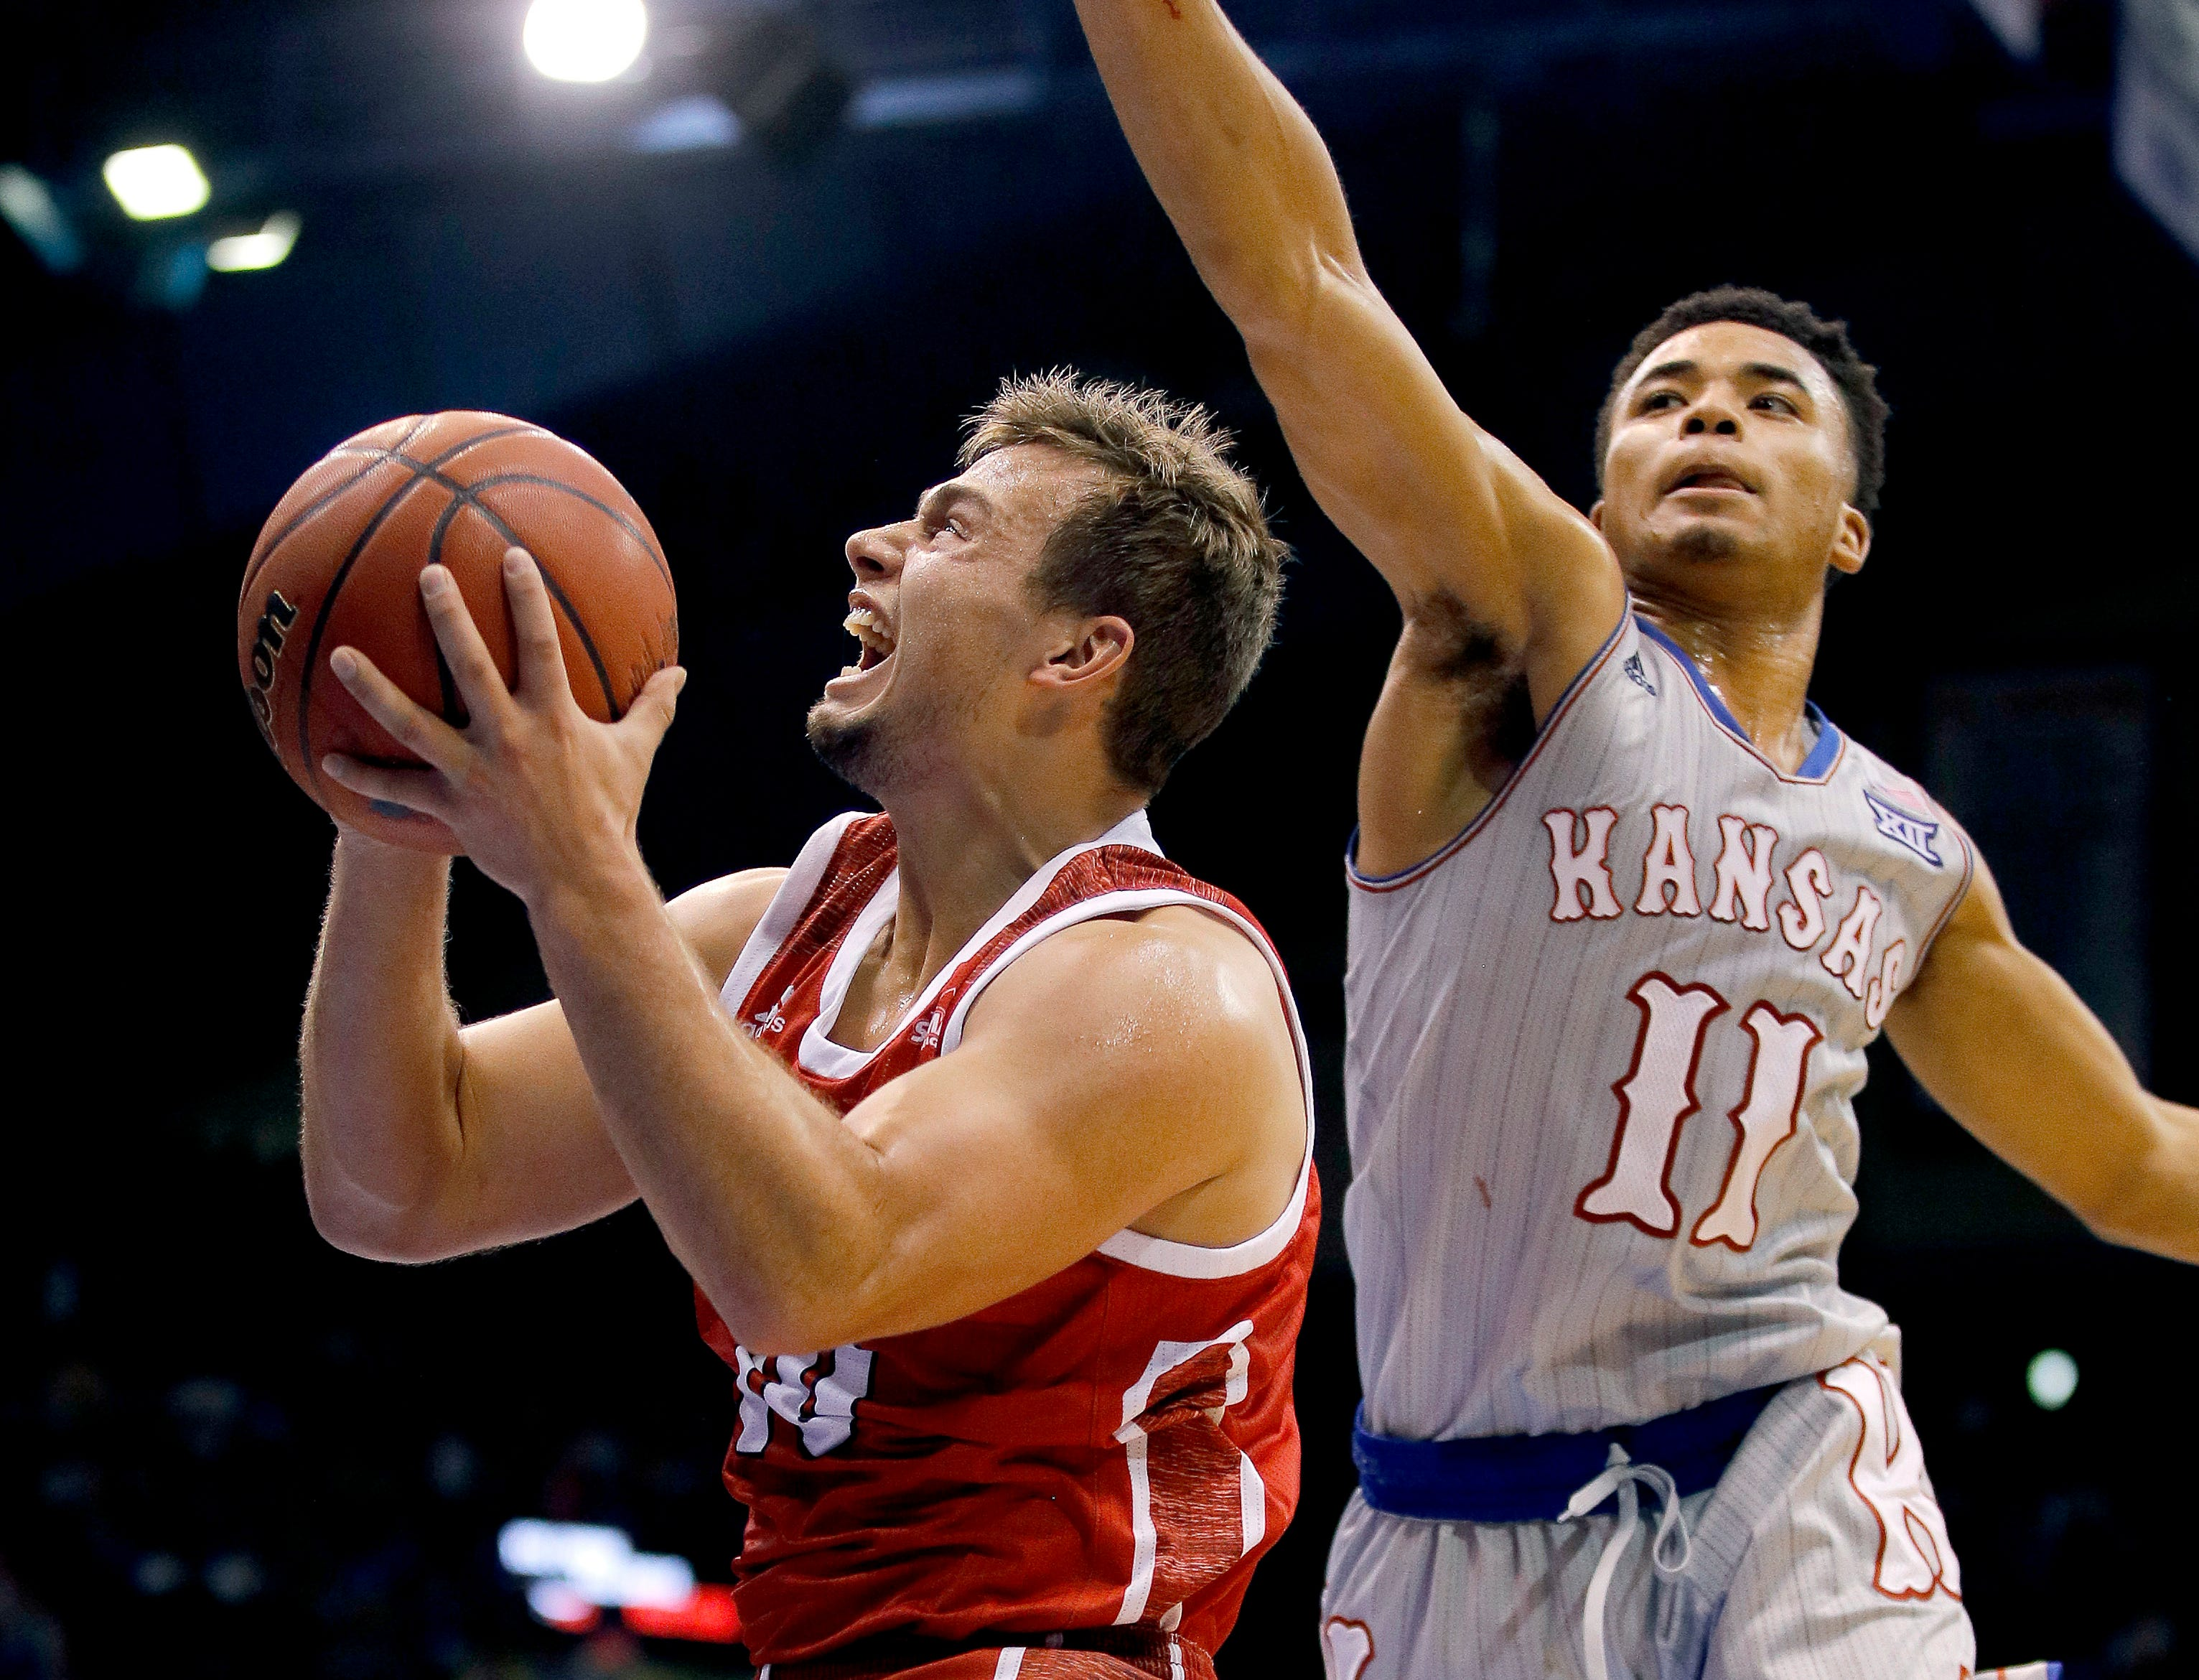 Kansas' Devon Dotson (11) tries to block a shot by South Dakota's Cody Kelley during the second half of an NCAA college basketball game Tuesday, Dec. 18, 2018, in Lawrence, Kan. Kansas won 89-53. (AP Photo/Charlie Riedel)